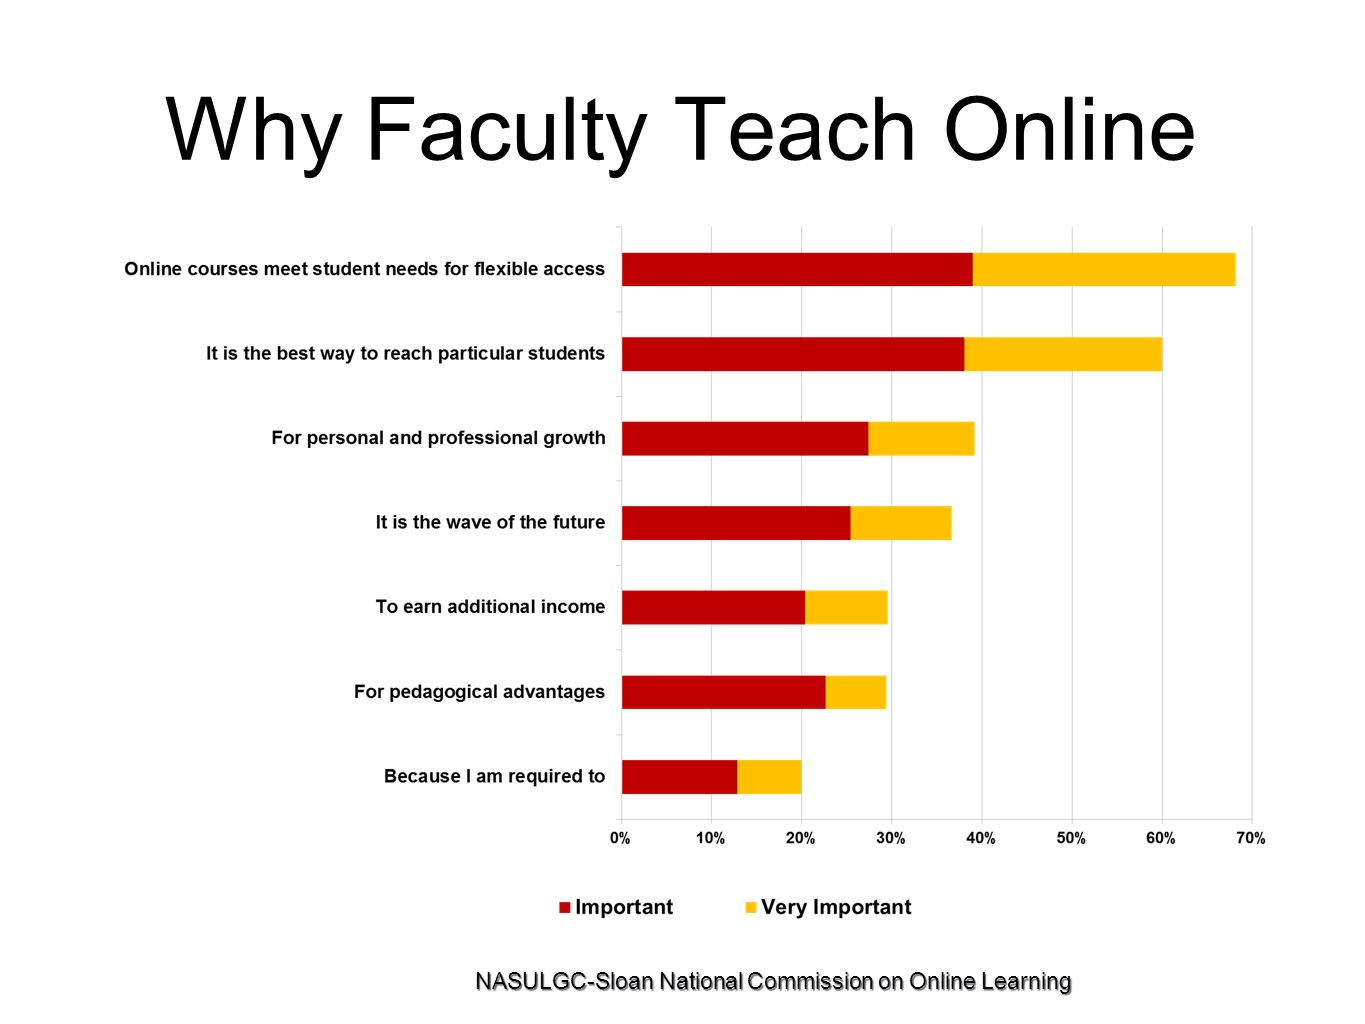 Why Faculty Teach Online NASULGC-Sloan National Commission on Online Learning